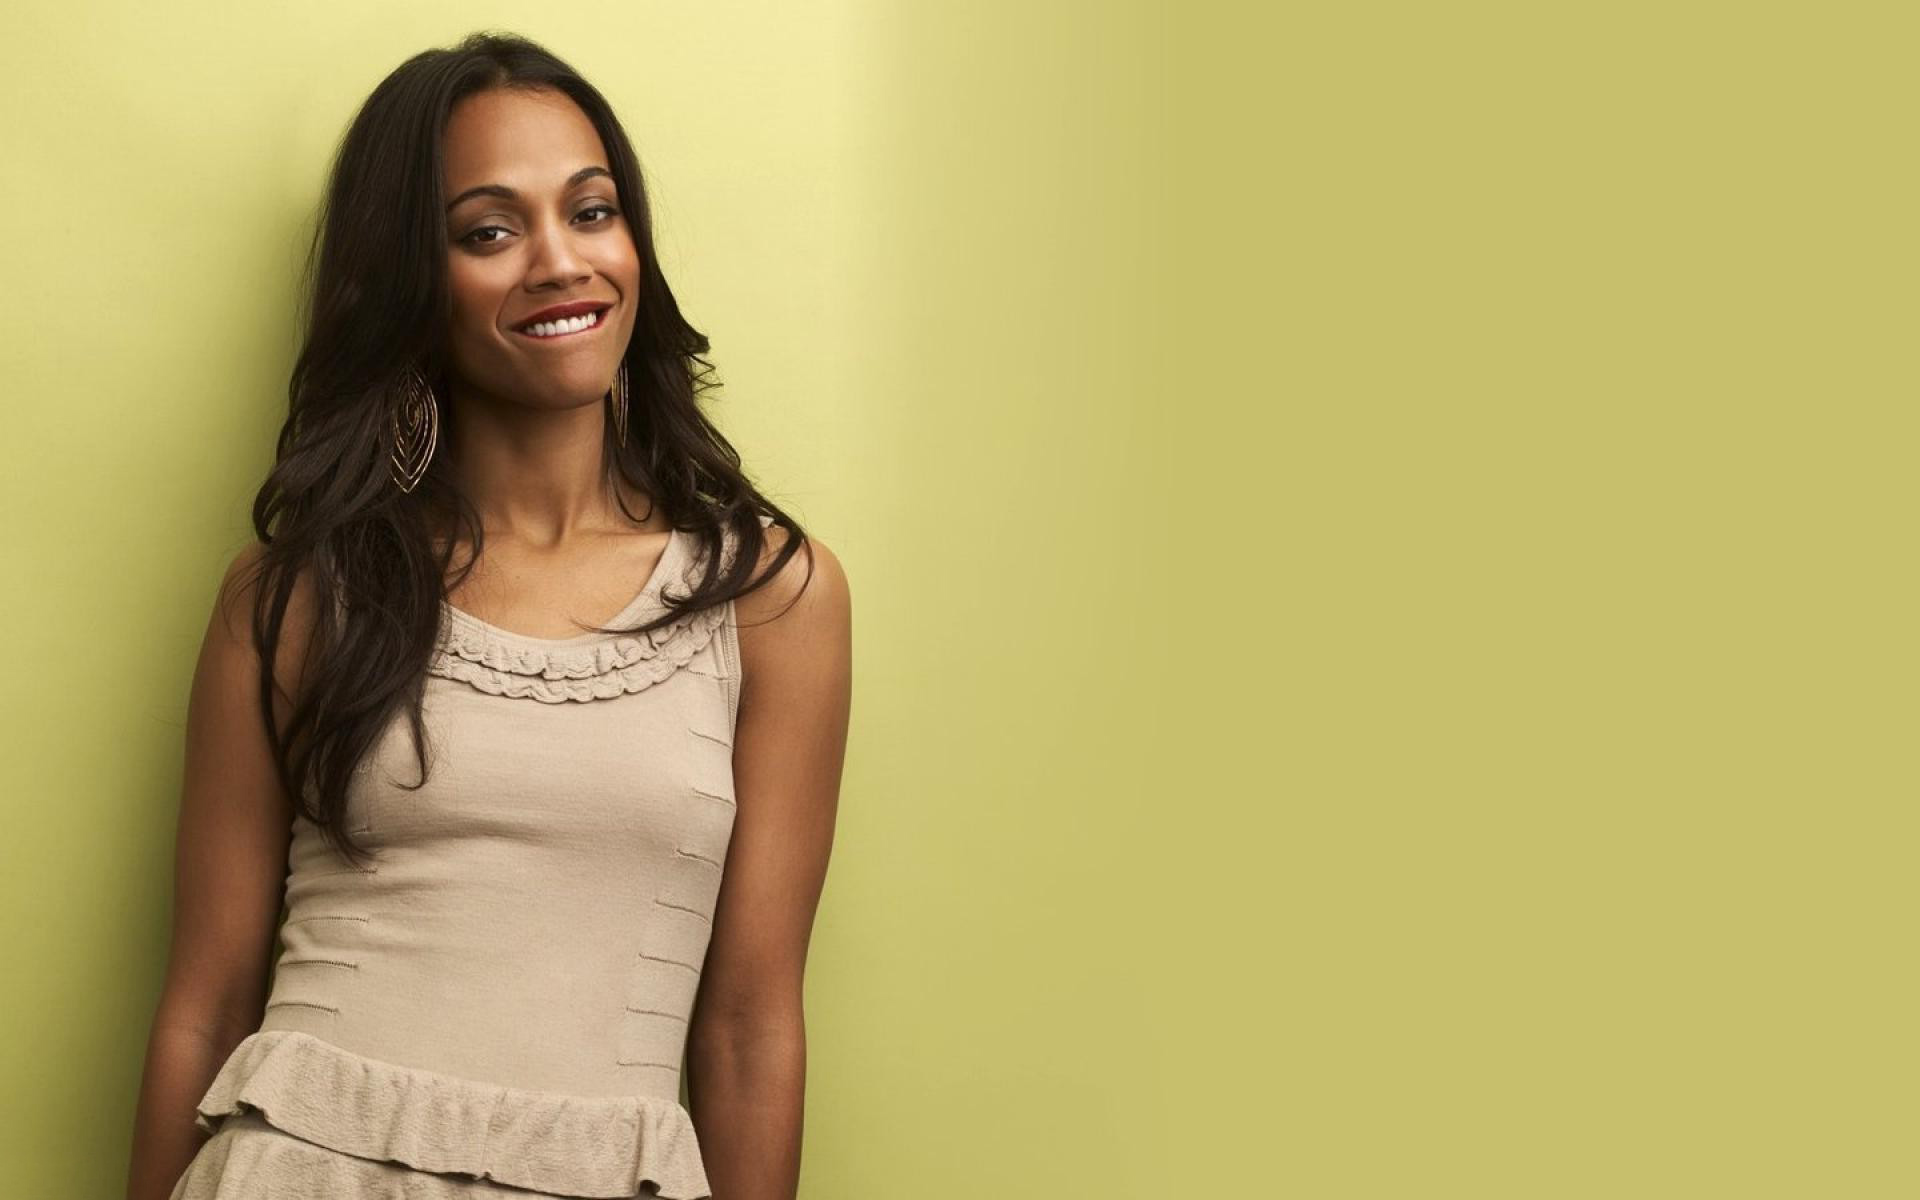 Zoe saldana background wallpaper high definition high - Zoe wallpaper ...